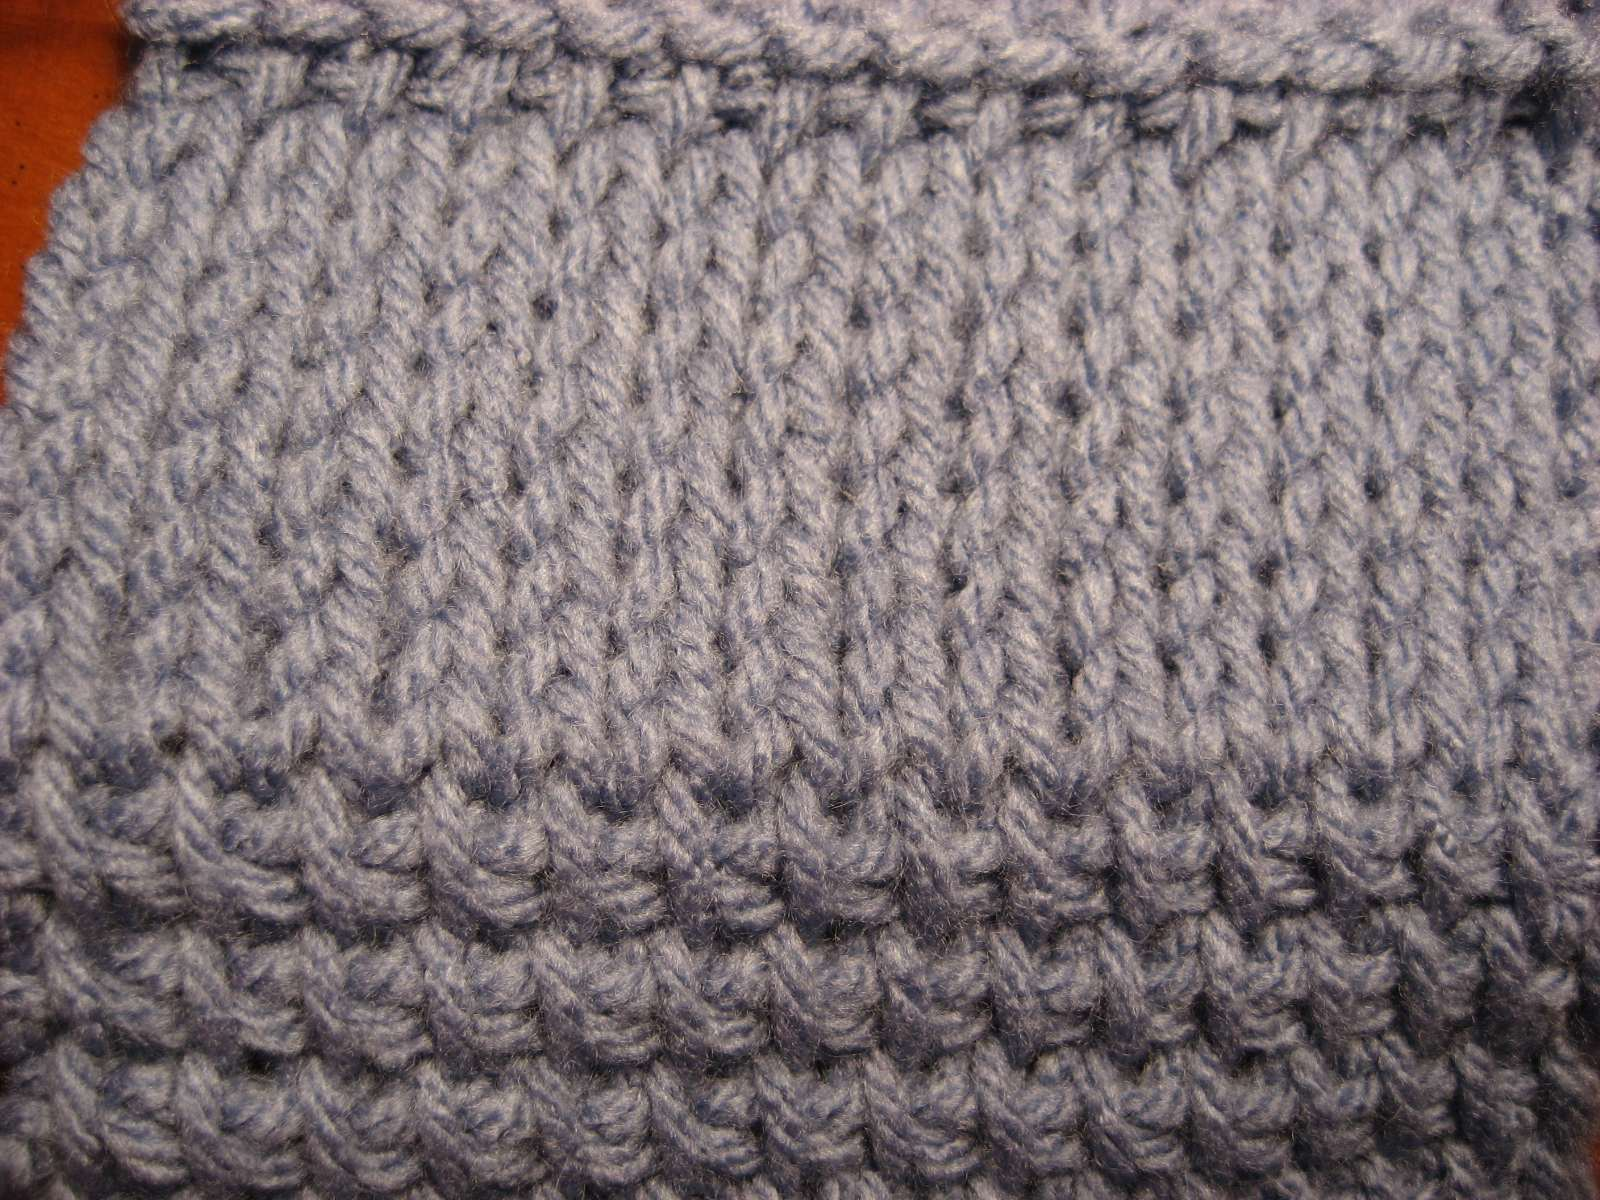 Crochet Stitches That Look Knit : the above picture is obviously a knitted fabric because the stitches ...